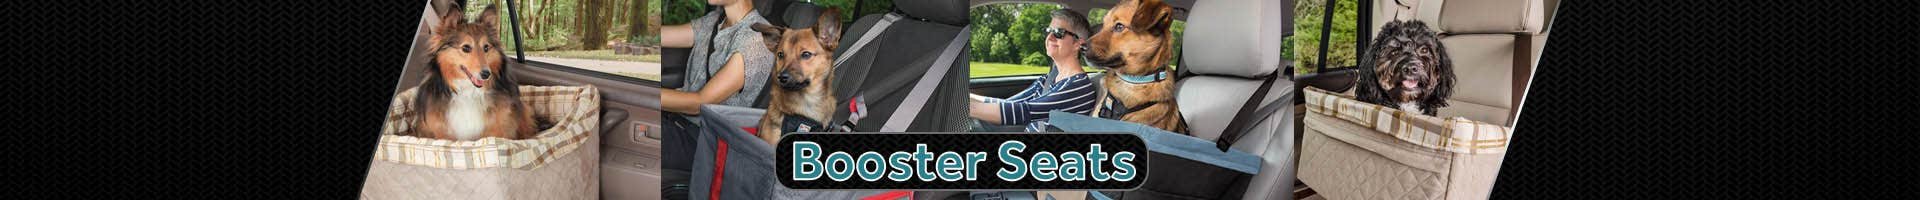 Booster Seats For Dogs